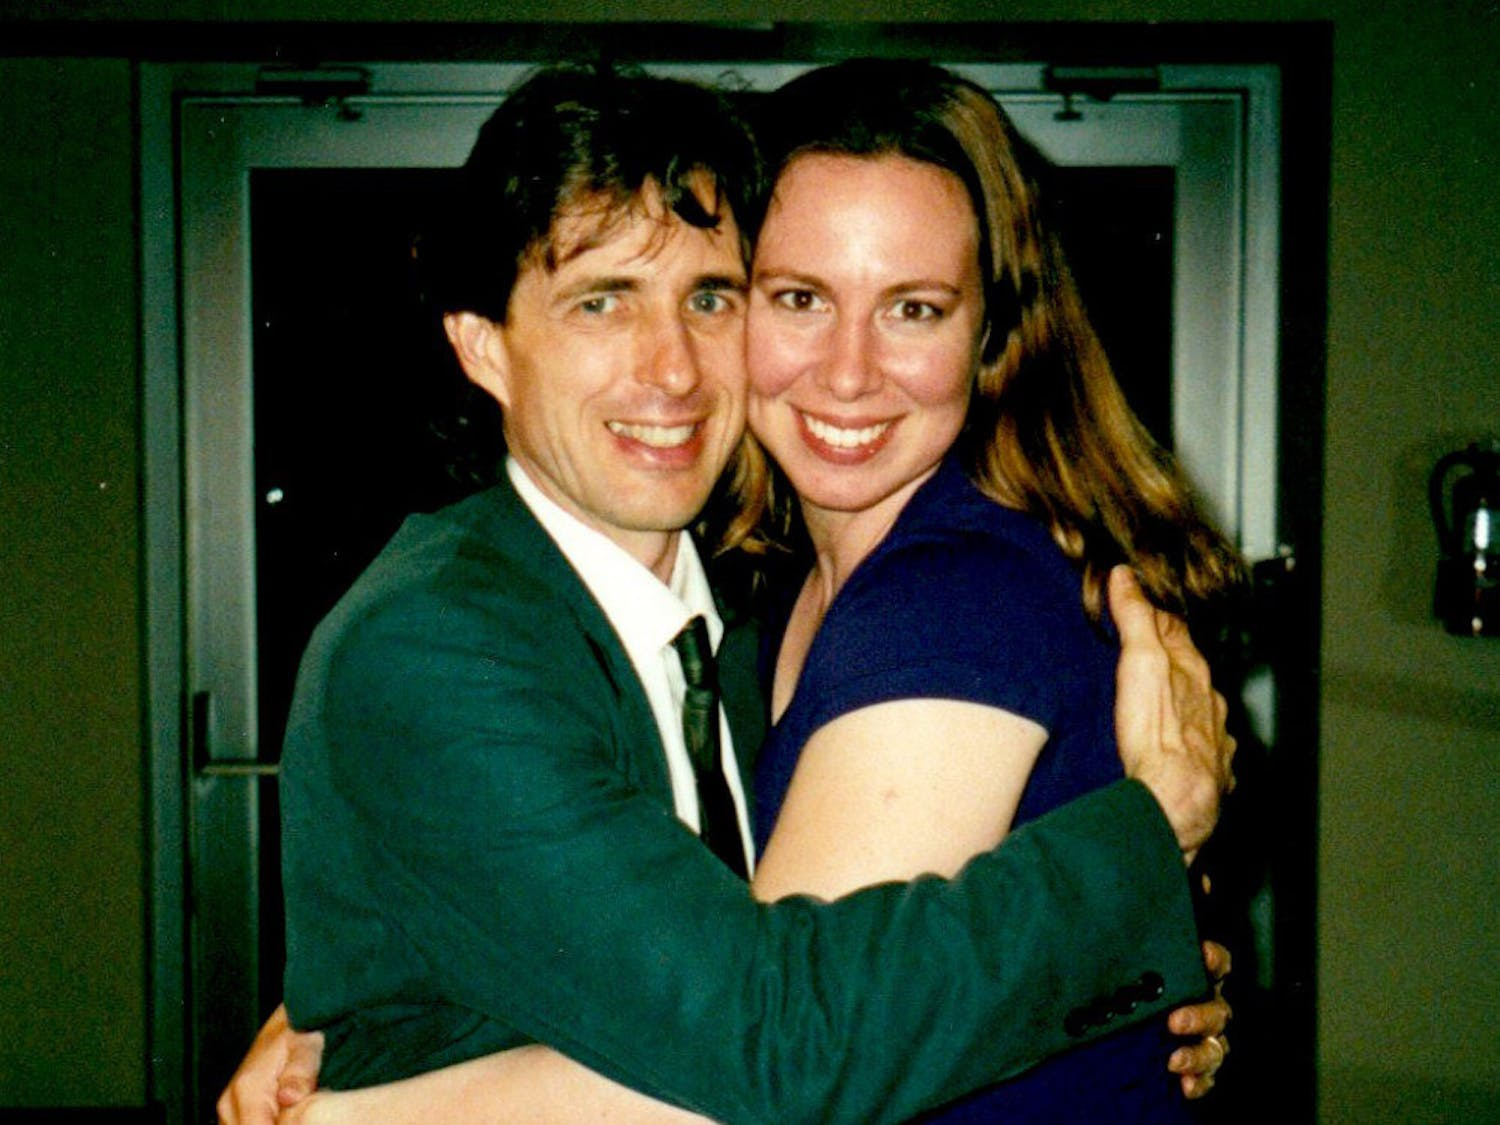 UF dance professor Richard Rose and his former dance student, Lynn Forney, pose for a photo in the 2000-2001 school year, when she was still a UF student. The 40-year-old said one of her proudest moments was when Rose hugged her after she won the most outstanding senior award in the UF School of Theatre and Dance.